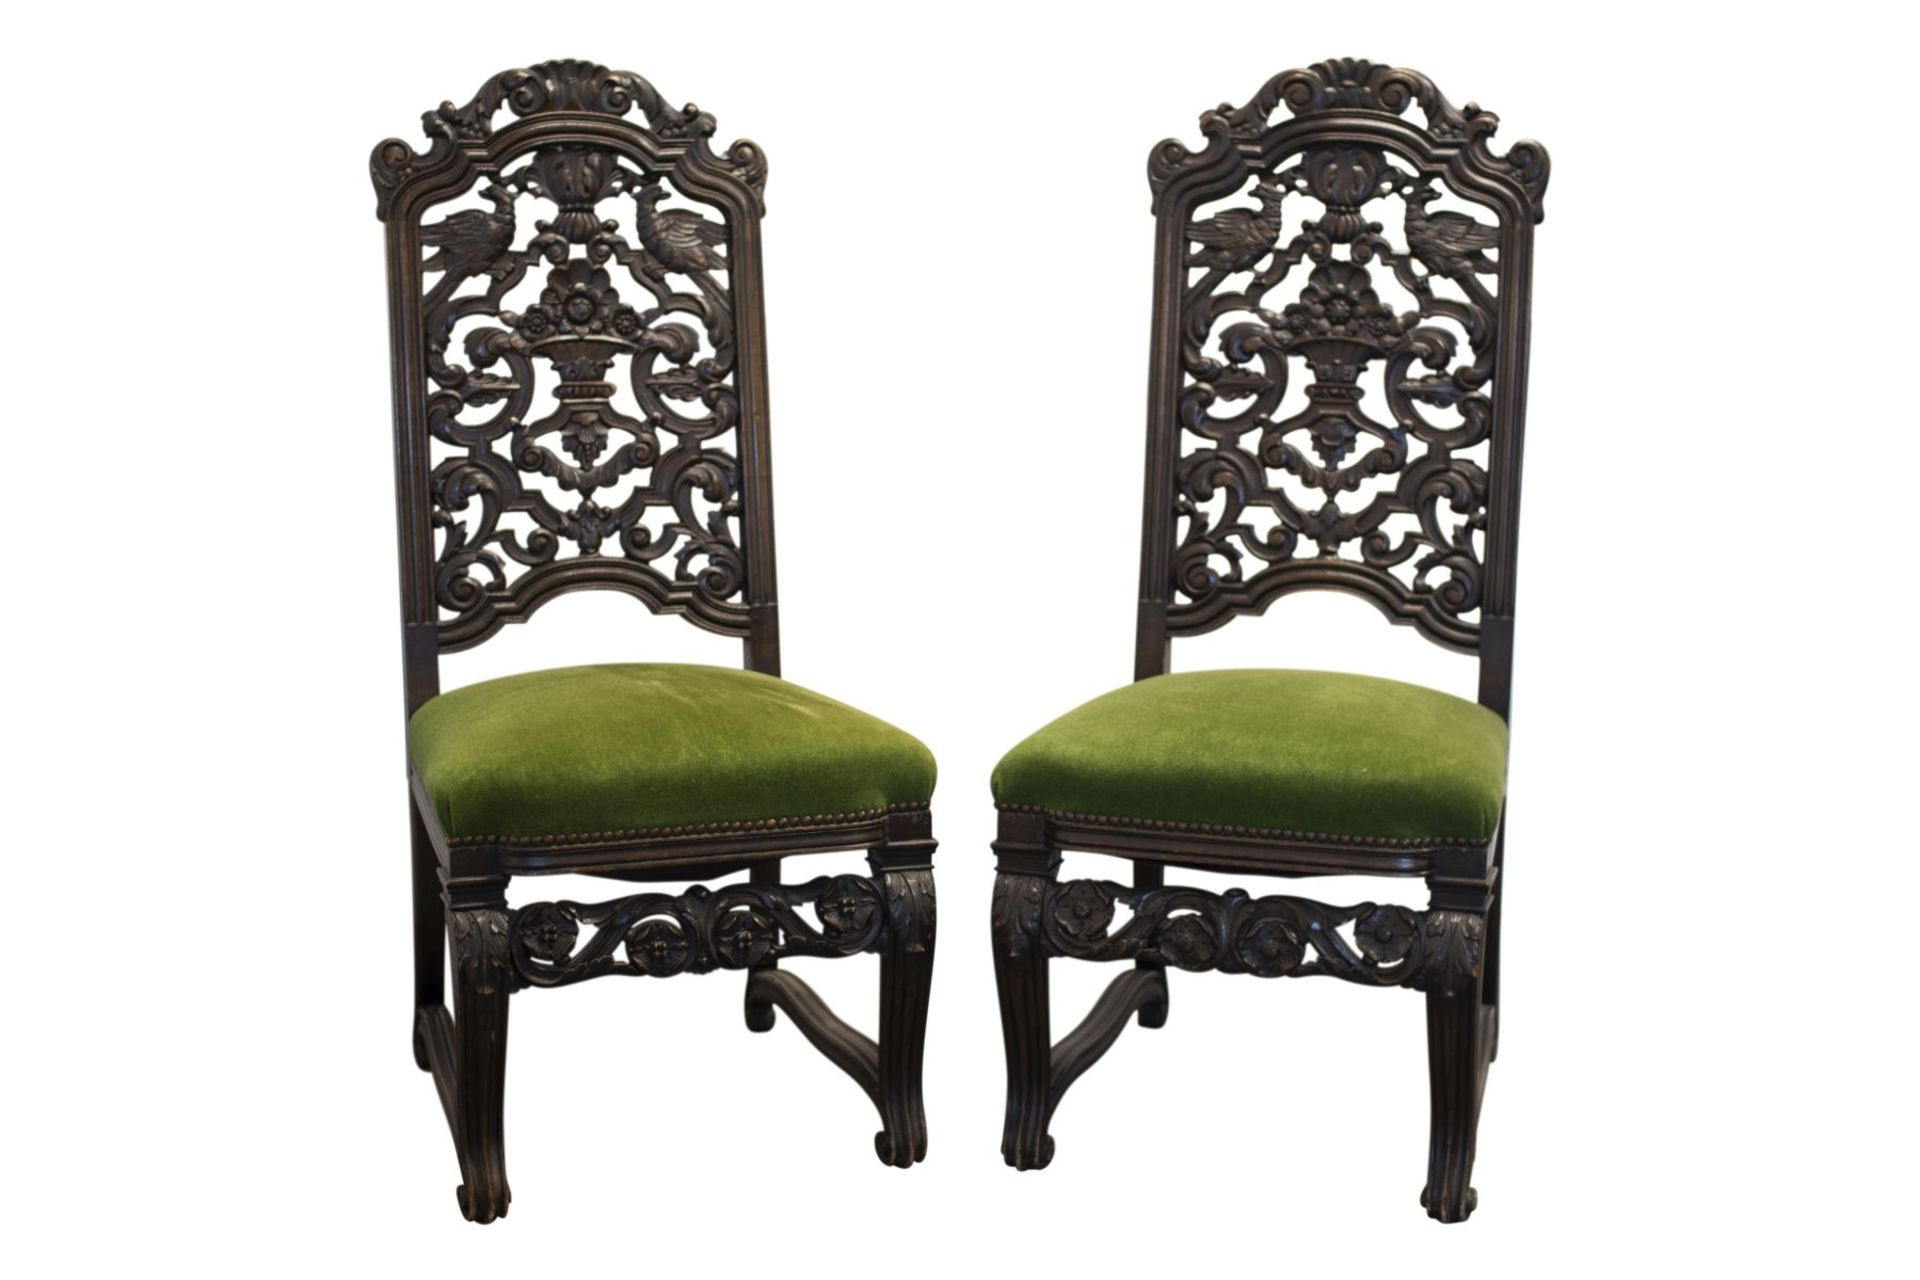 Pair of salon chairs, Belle Epoch style - Image 2 of 7